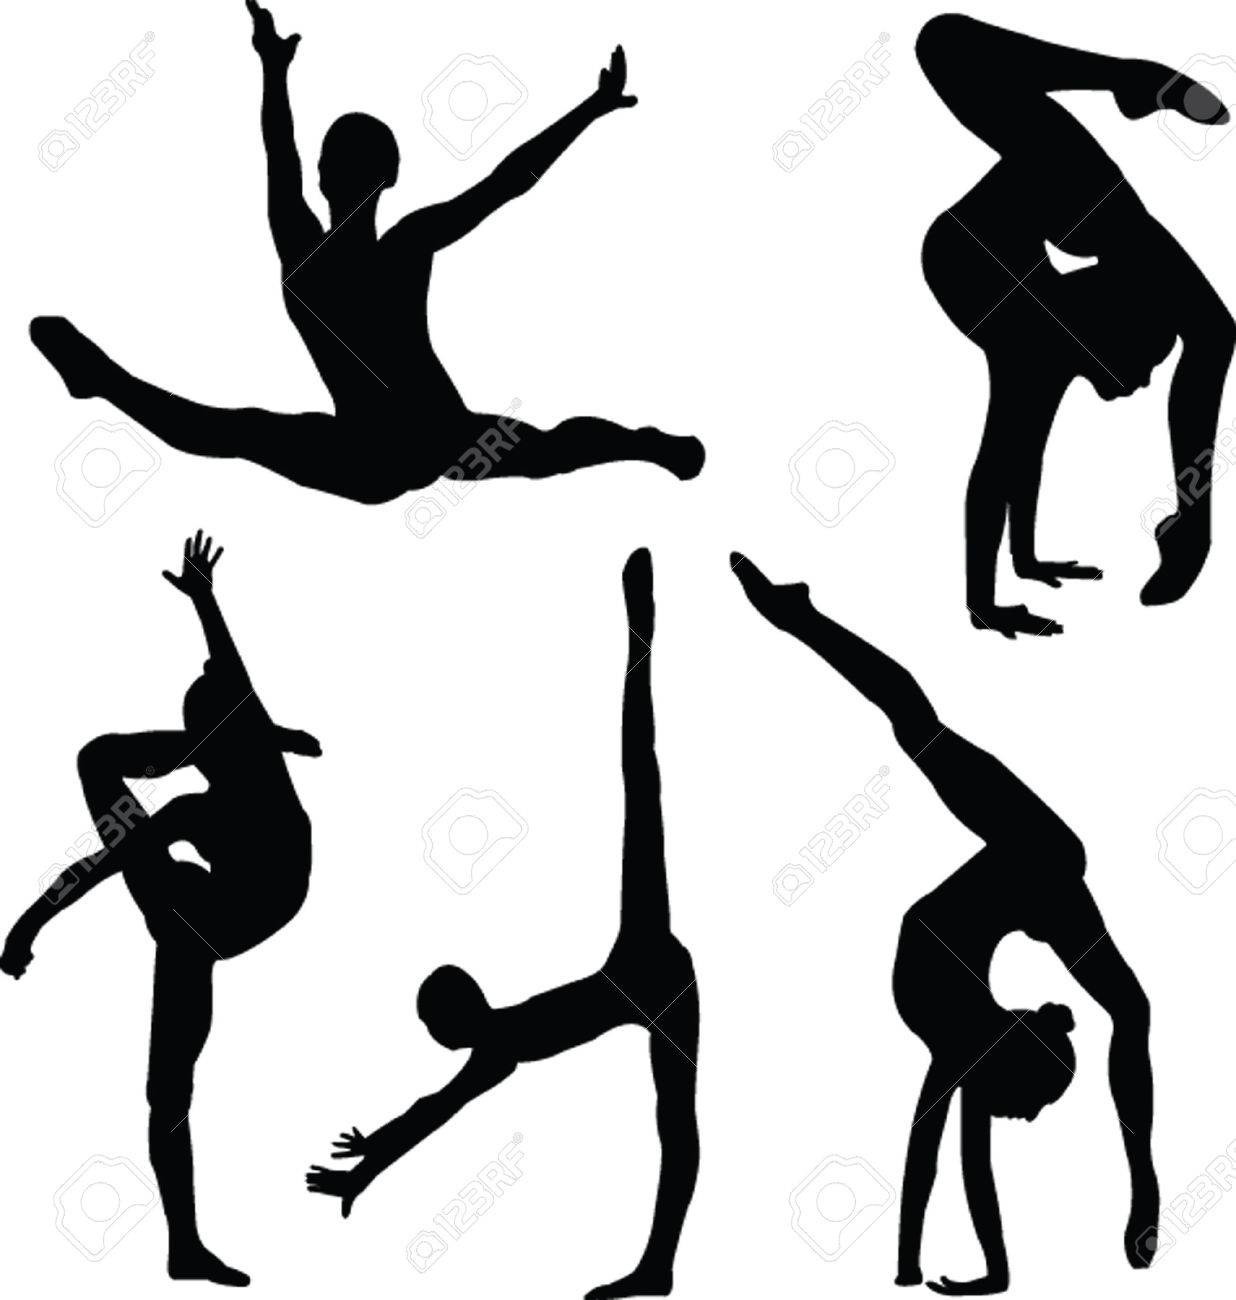 Gymnastics Girl Silhouette Collection - Vector Royalty Free ...